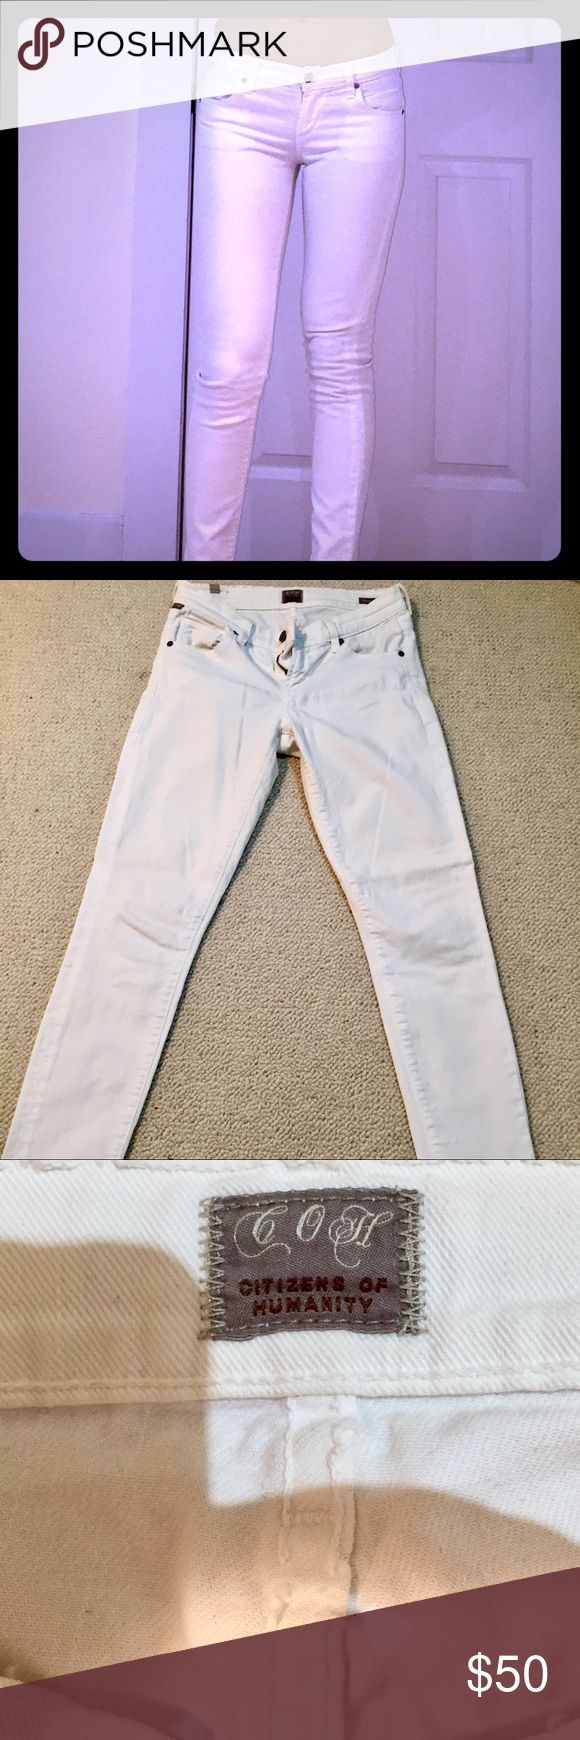 SALE: Citizens of Humanity White Skinny Jeans Just reduced - Joe's skinny white jeans are a summer and vacation staple, fitted all the way down to the ankle. Citizens of Humanity Jeans Skinny